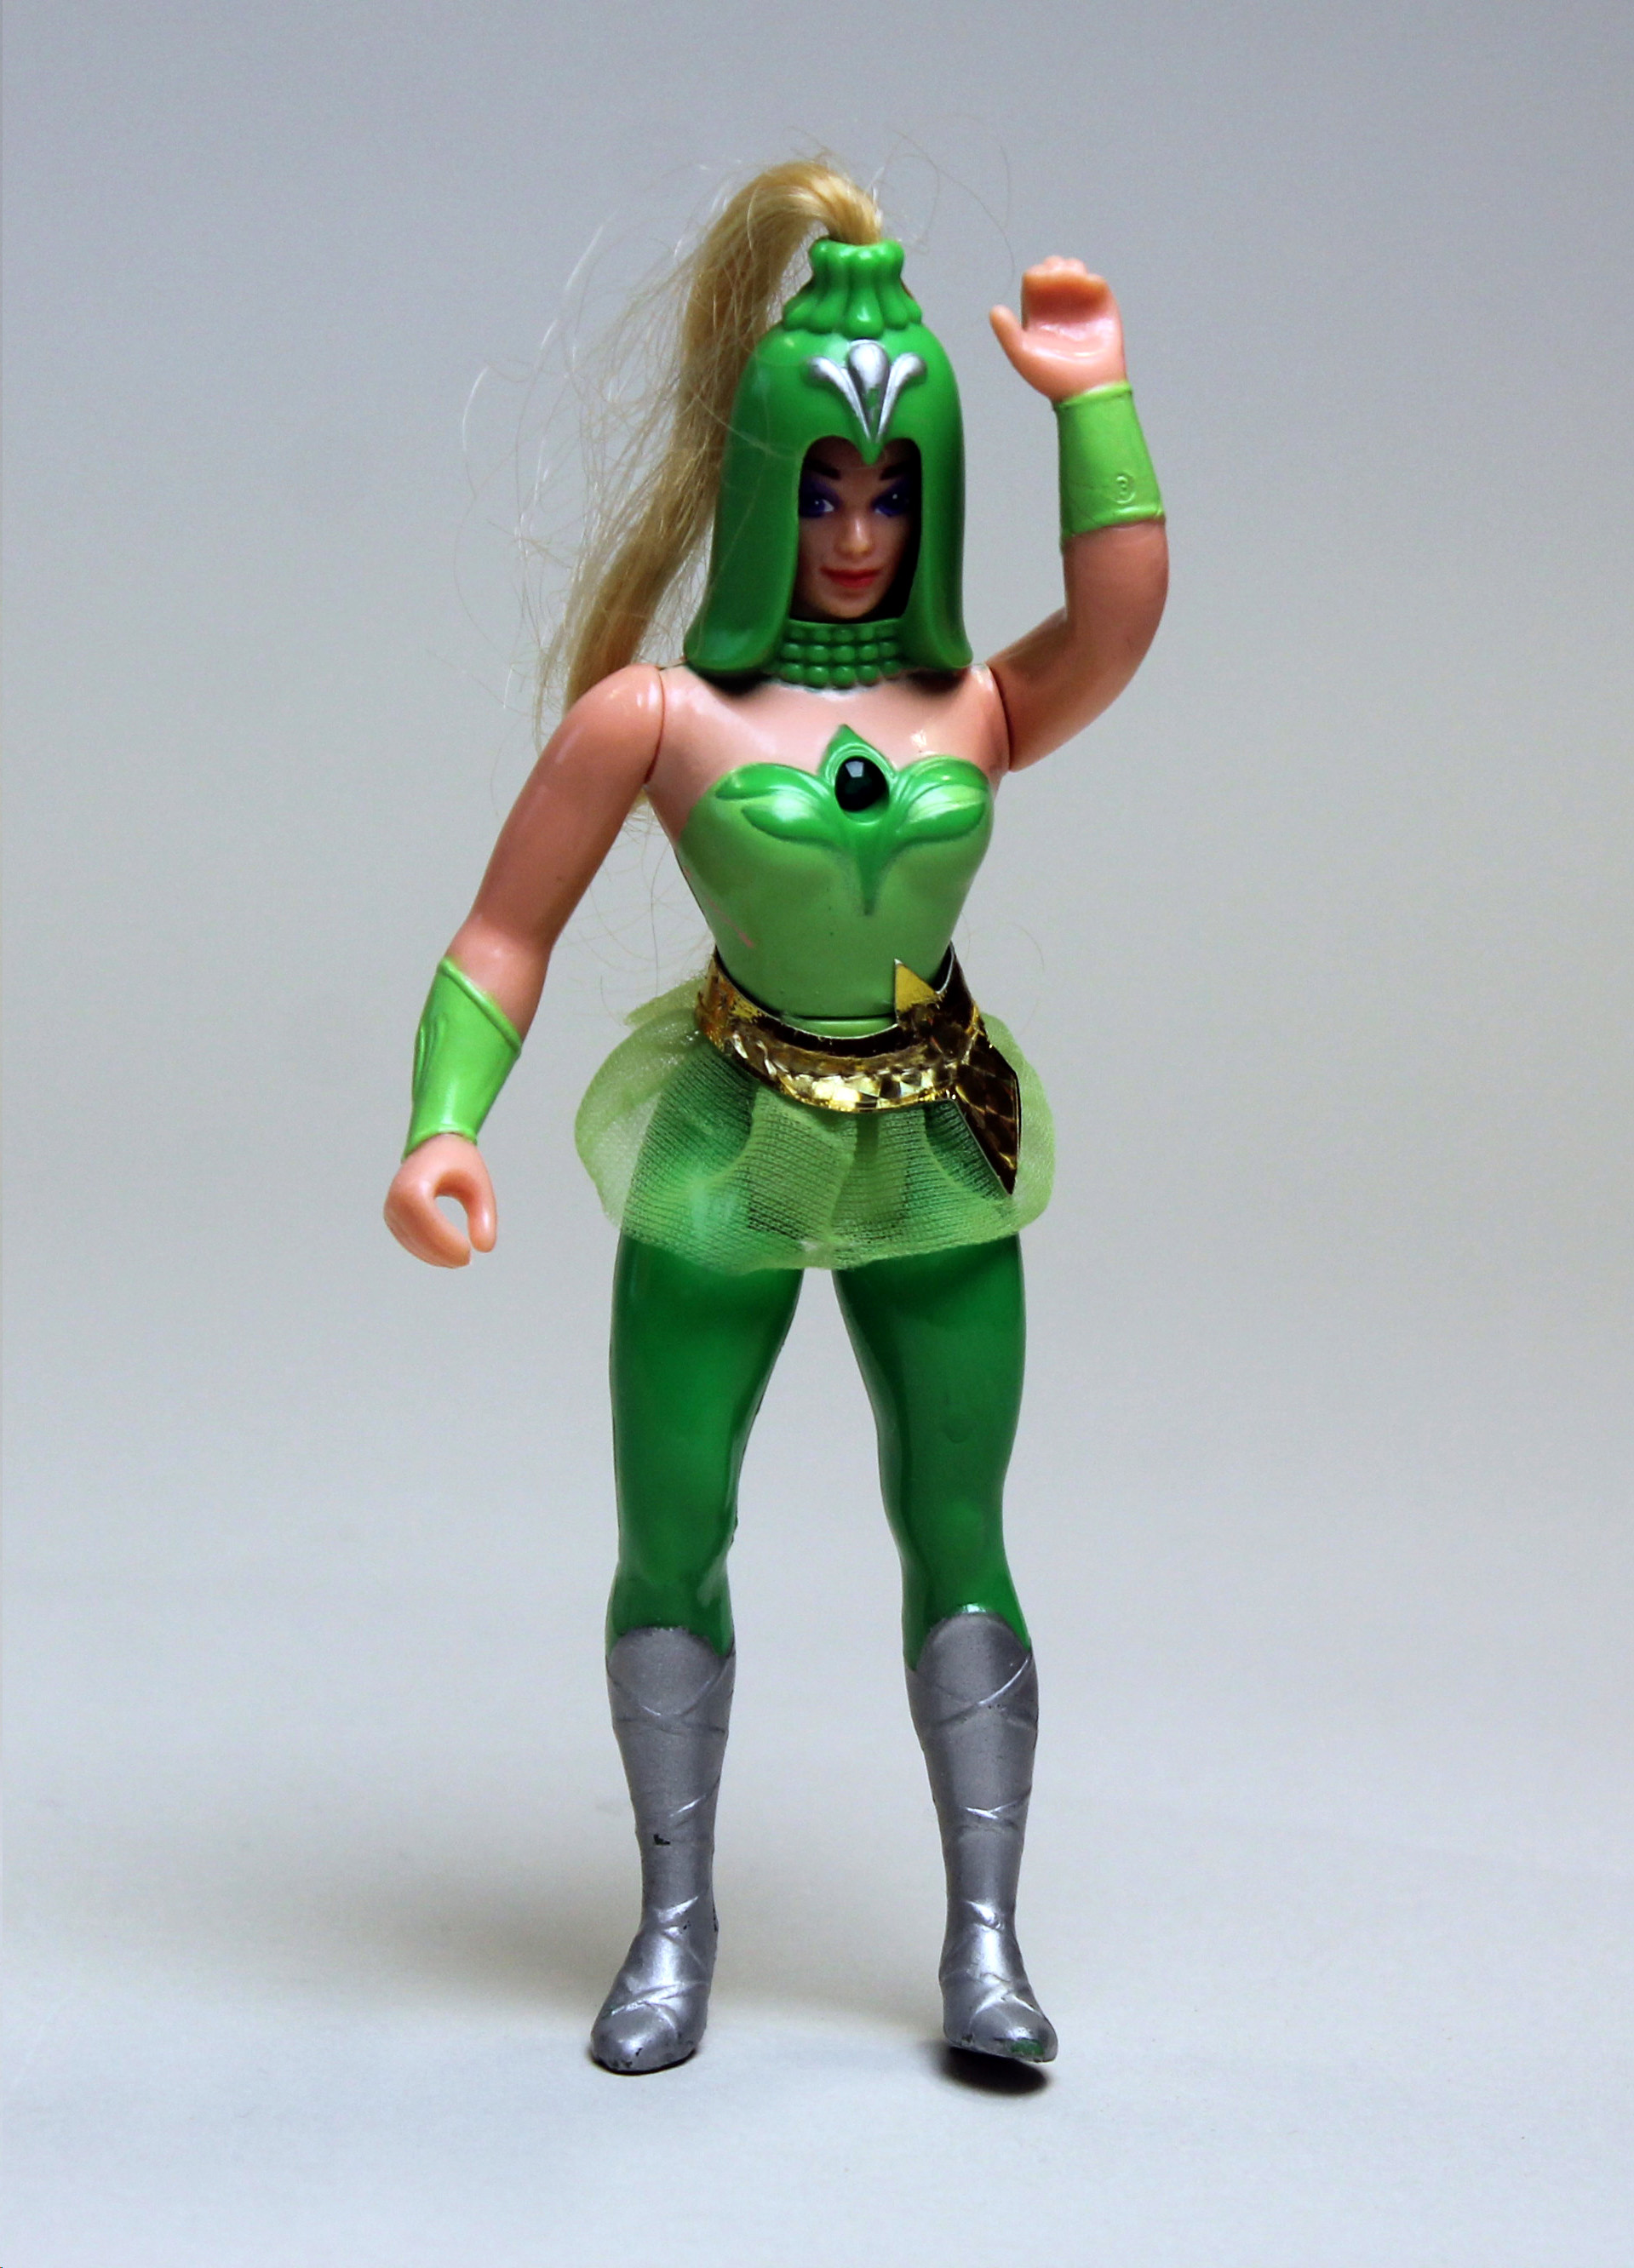 Colour photograph of a figurine of a female character wearing a green costume, including a large, green helmet